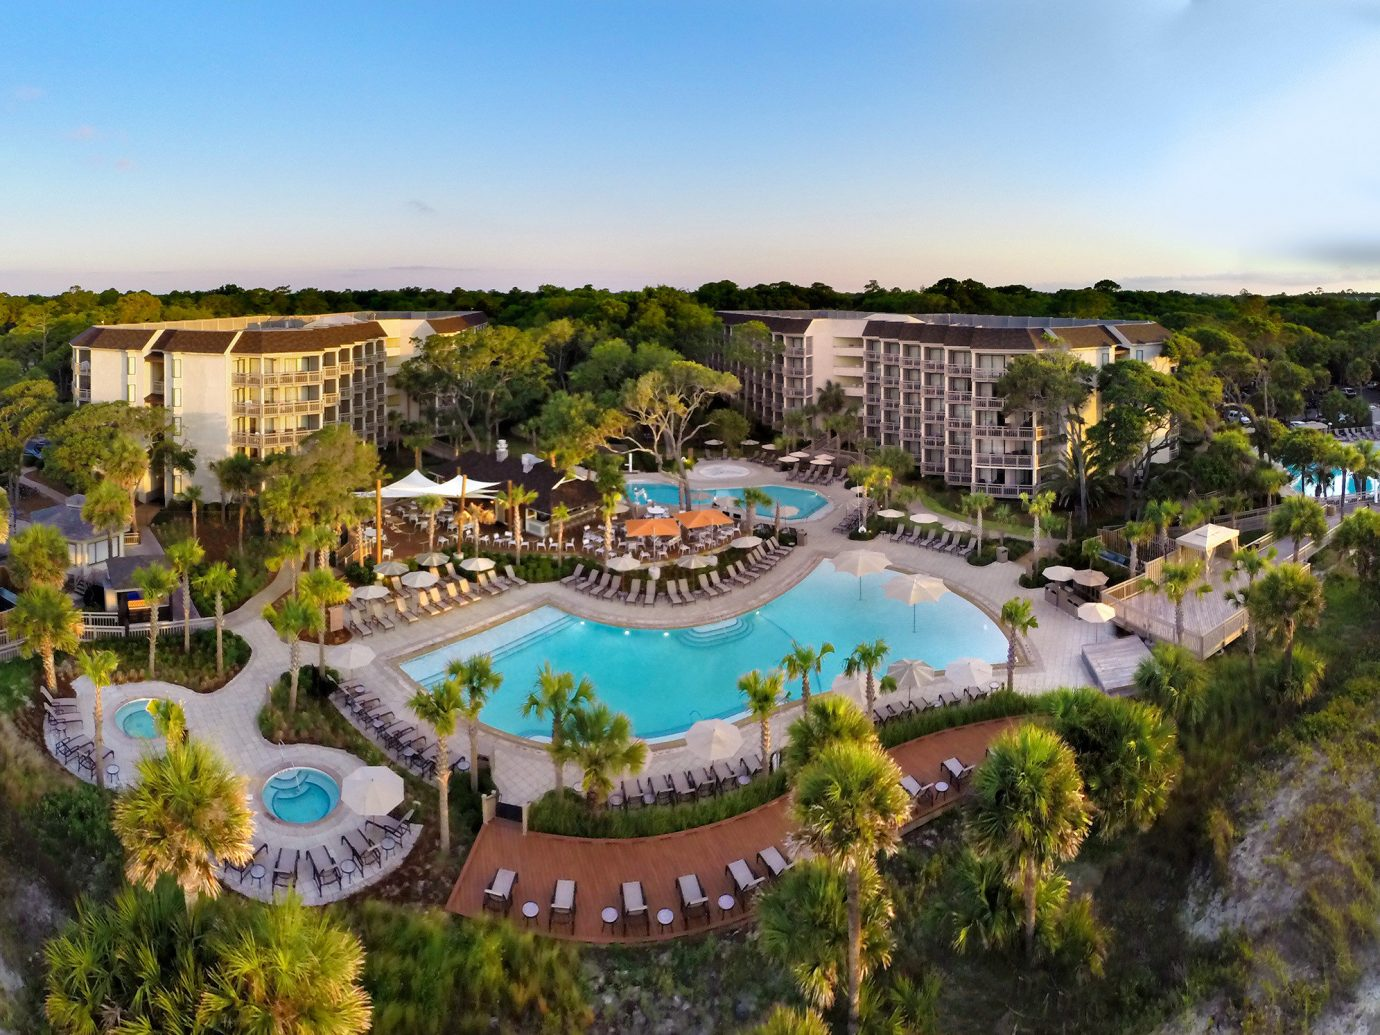 Trip Ideas sky outdoor tree leisure property Resort estate amusement park Water park tourism park recreation swimming pool mansion aerial photography lush